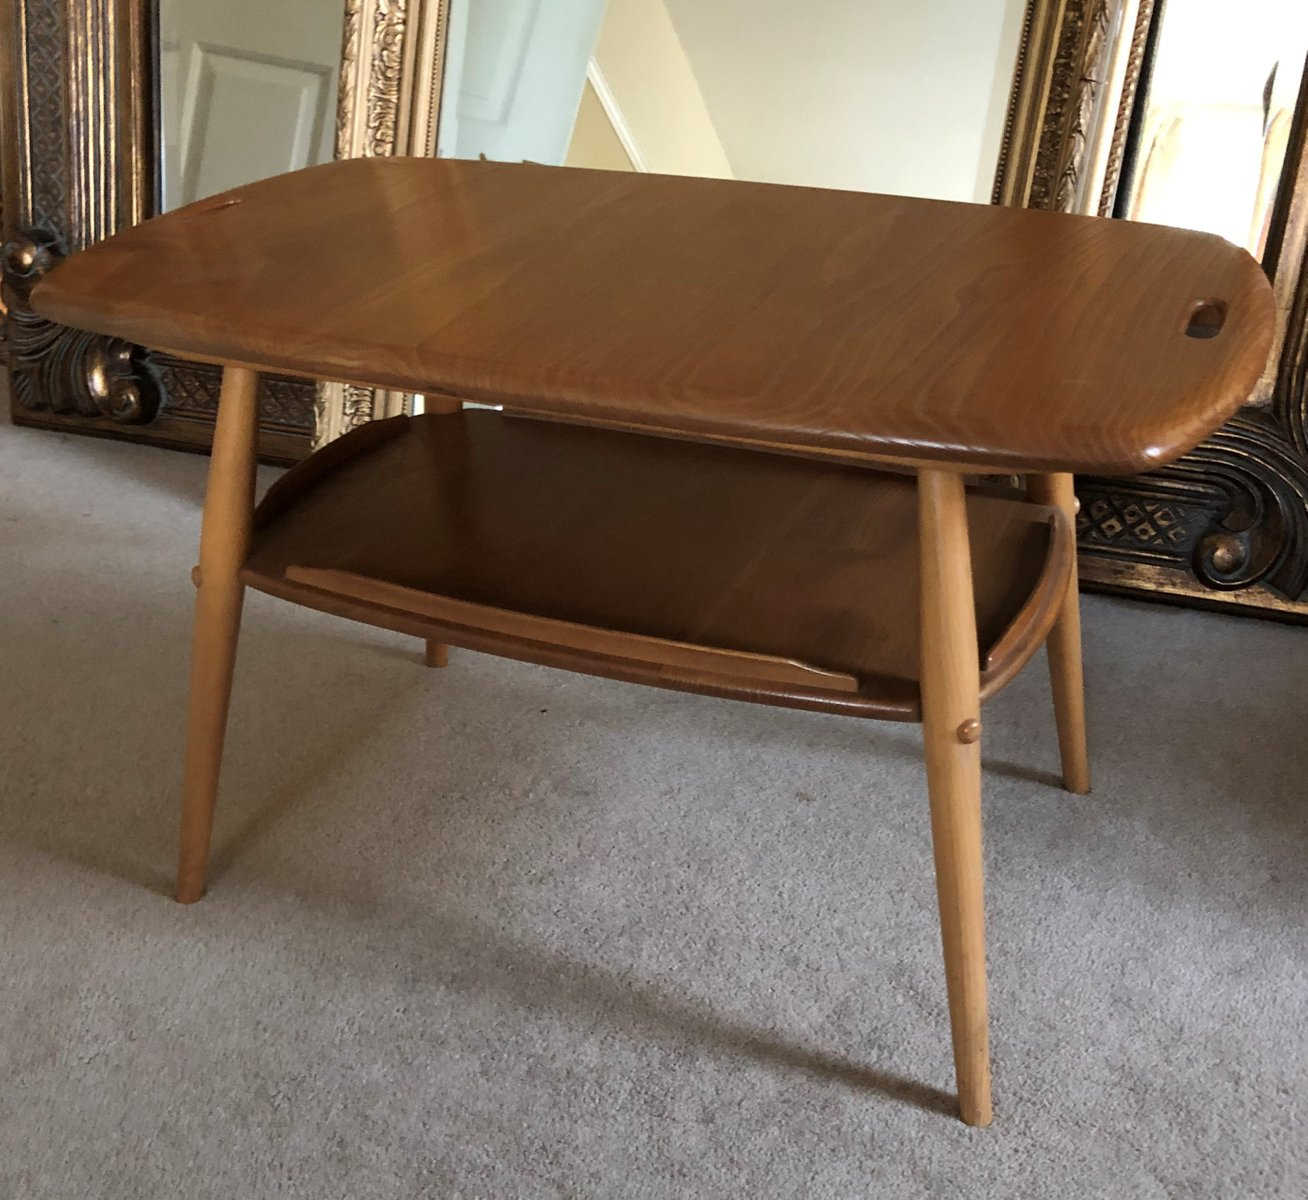 Vintage Ercol Coffee Tables For Sale: Vintage All Purpose Coffee Table By Lucian Ercolani For